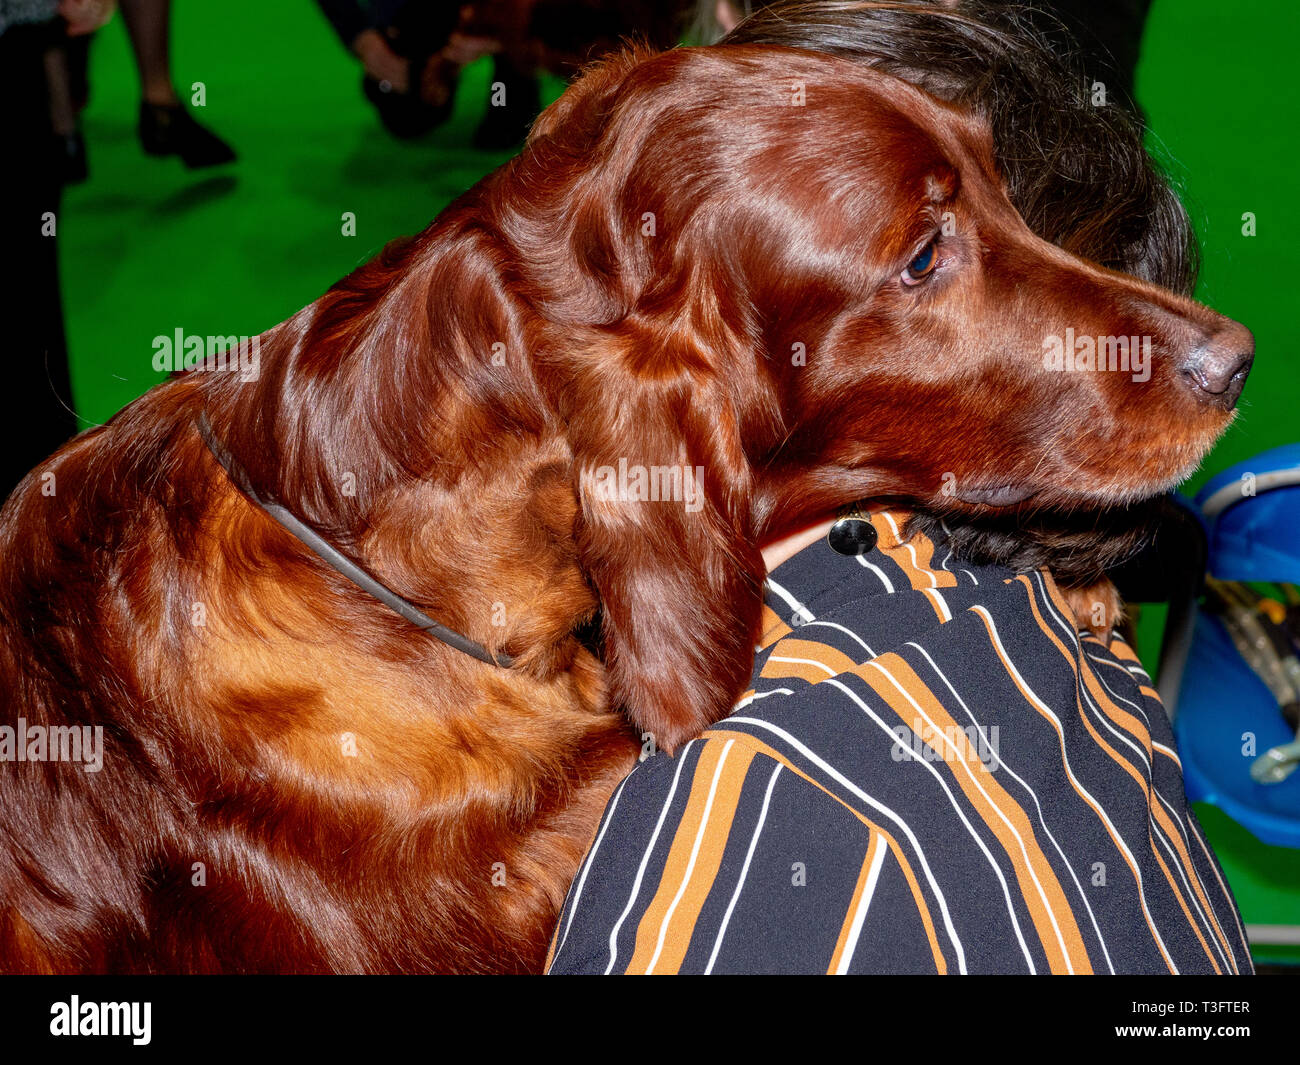 BIRMINGHAM, ENGLAND - MARCH 07: Cuddles at the National Exhibition Centre on March 7, 2019 in Birmingham, England. (Photo by Peter Dench/Getty Images) - Stock Image